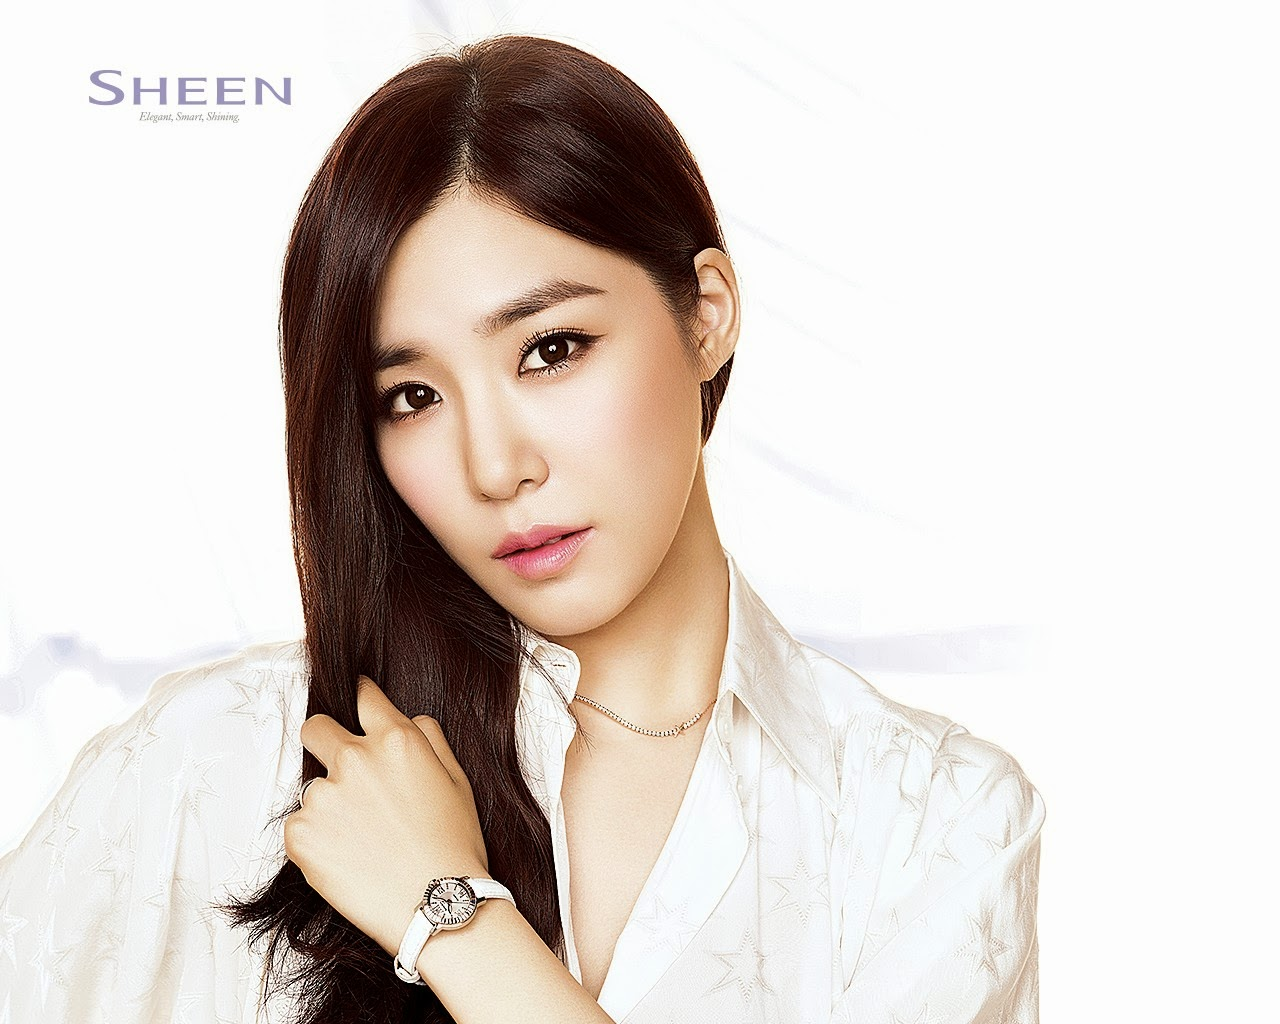 Tiffany Hwang Girls' Generation SNSD Sheen Casio